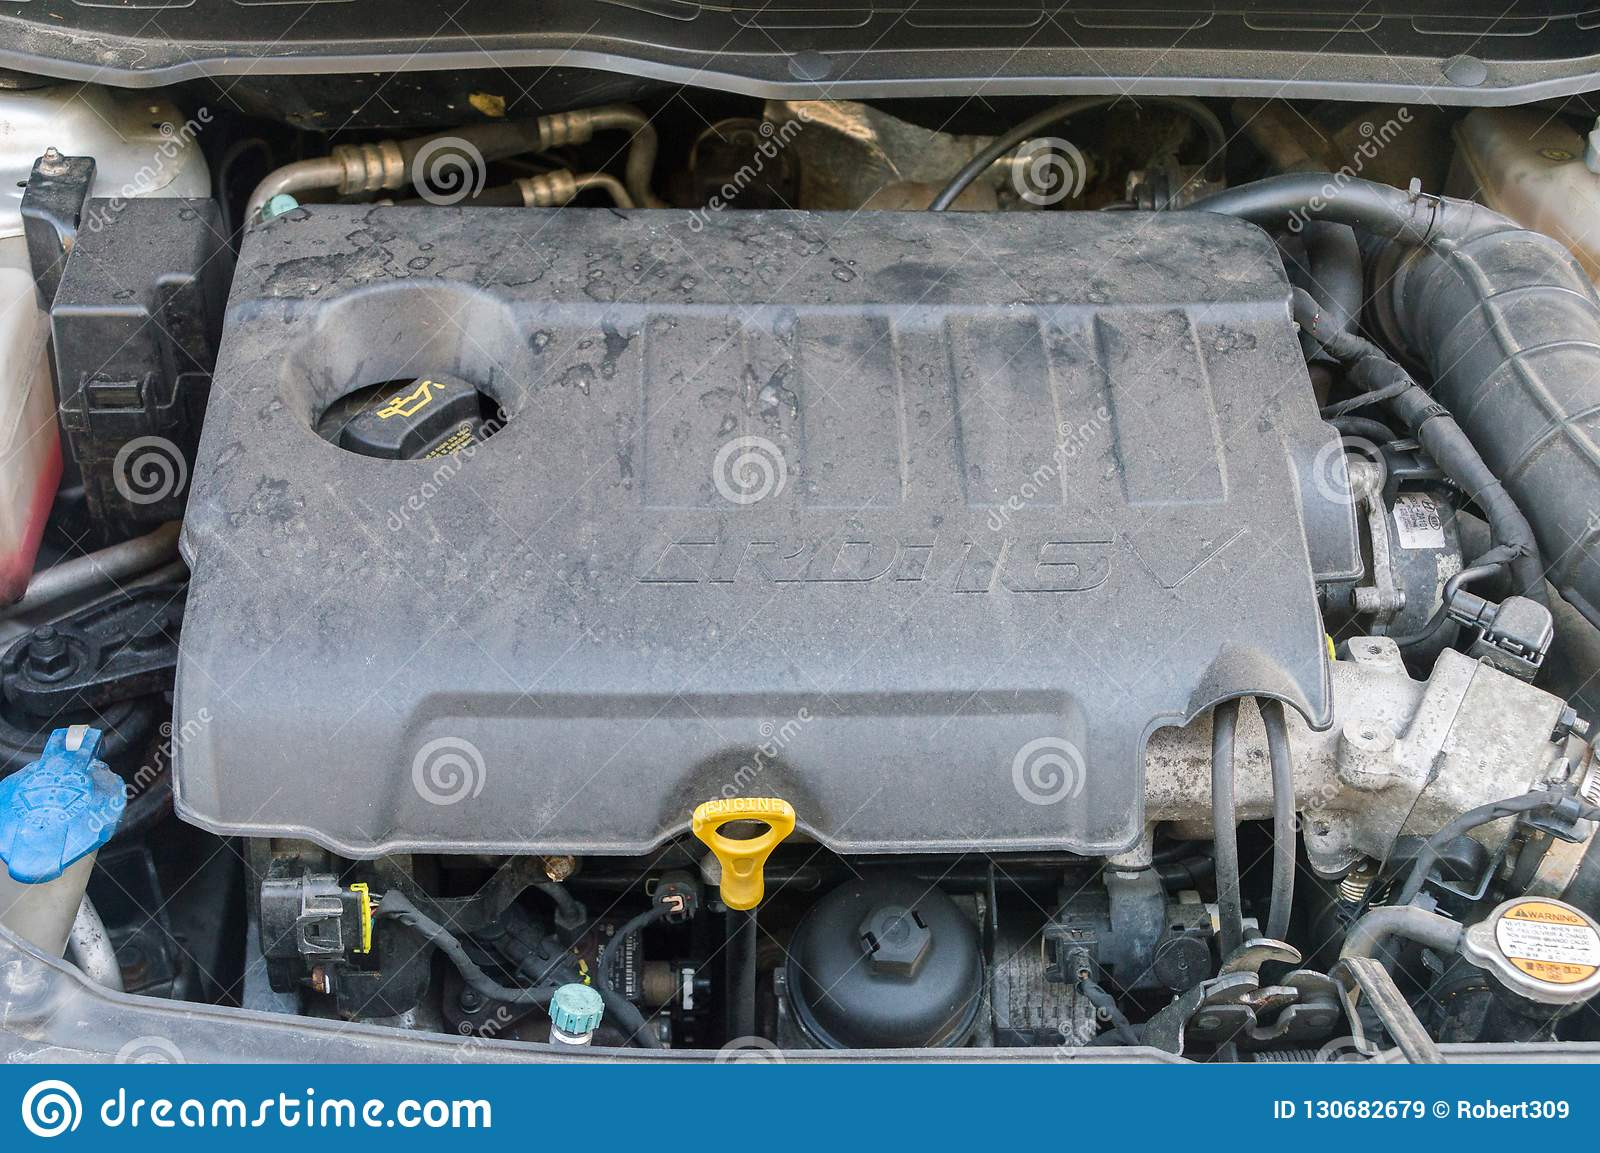 1 4 CRDi Common Rail Direct Injection 16V Diesel Engine In